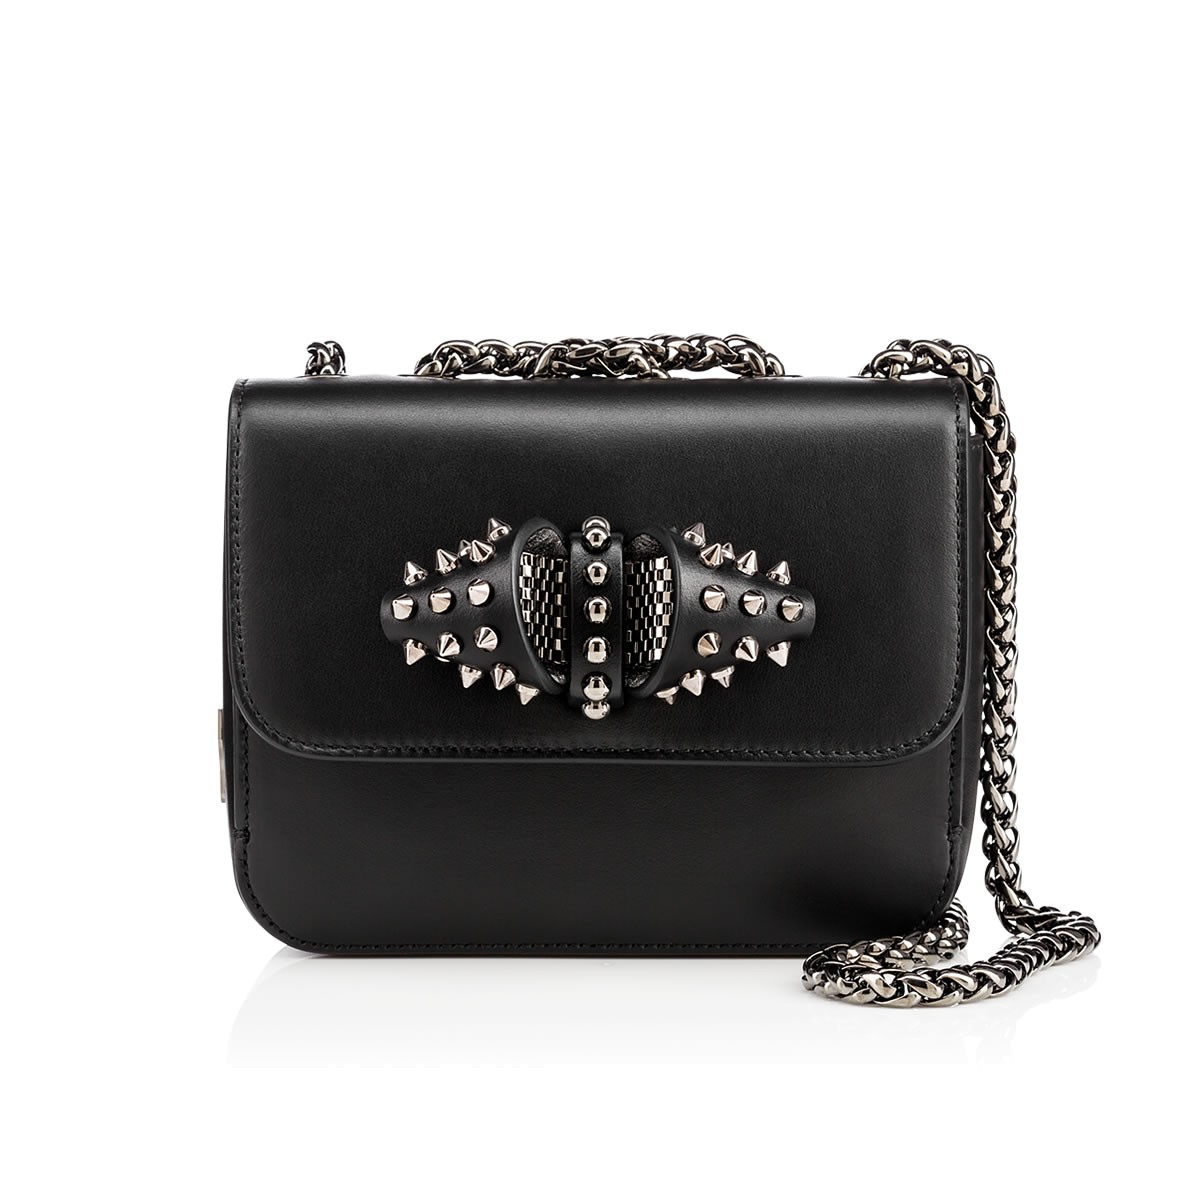 1d49ff7166bf Lyst - Christian Louboutin Sweet Charity Baby Chain Bag in Black